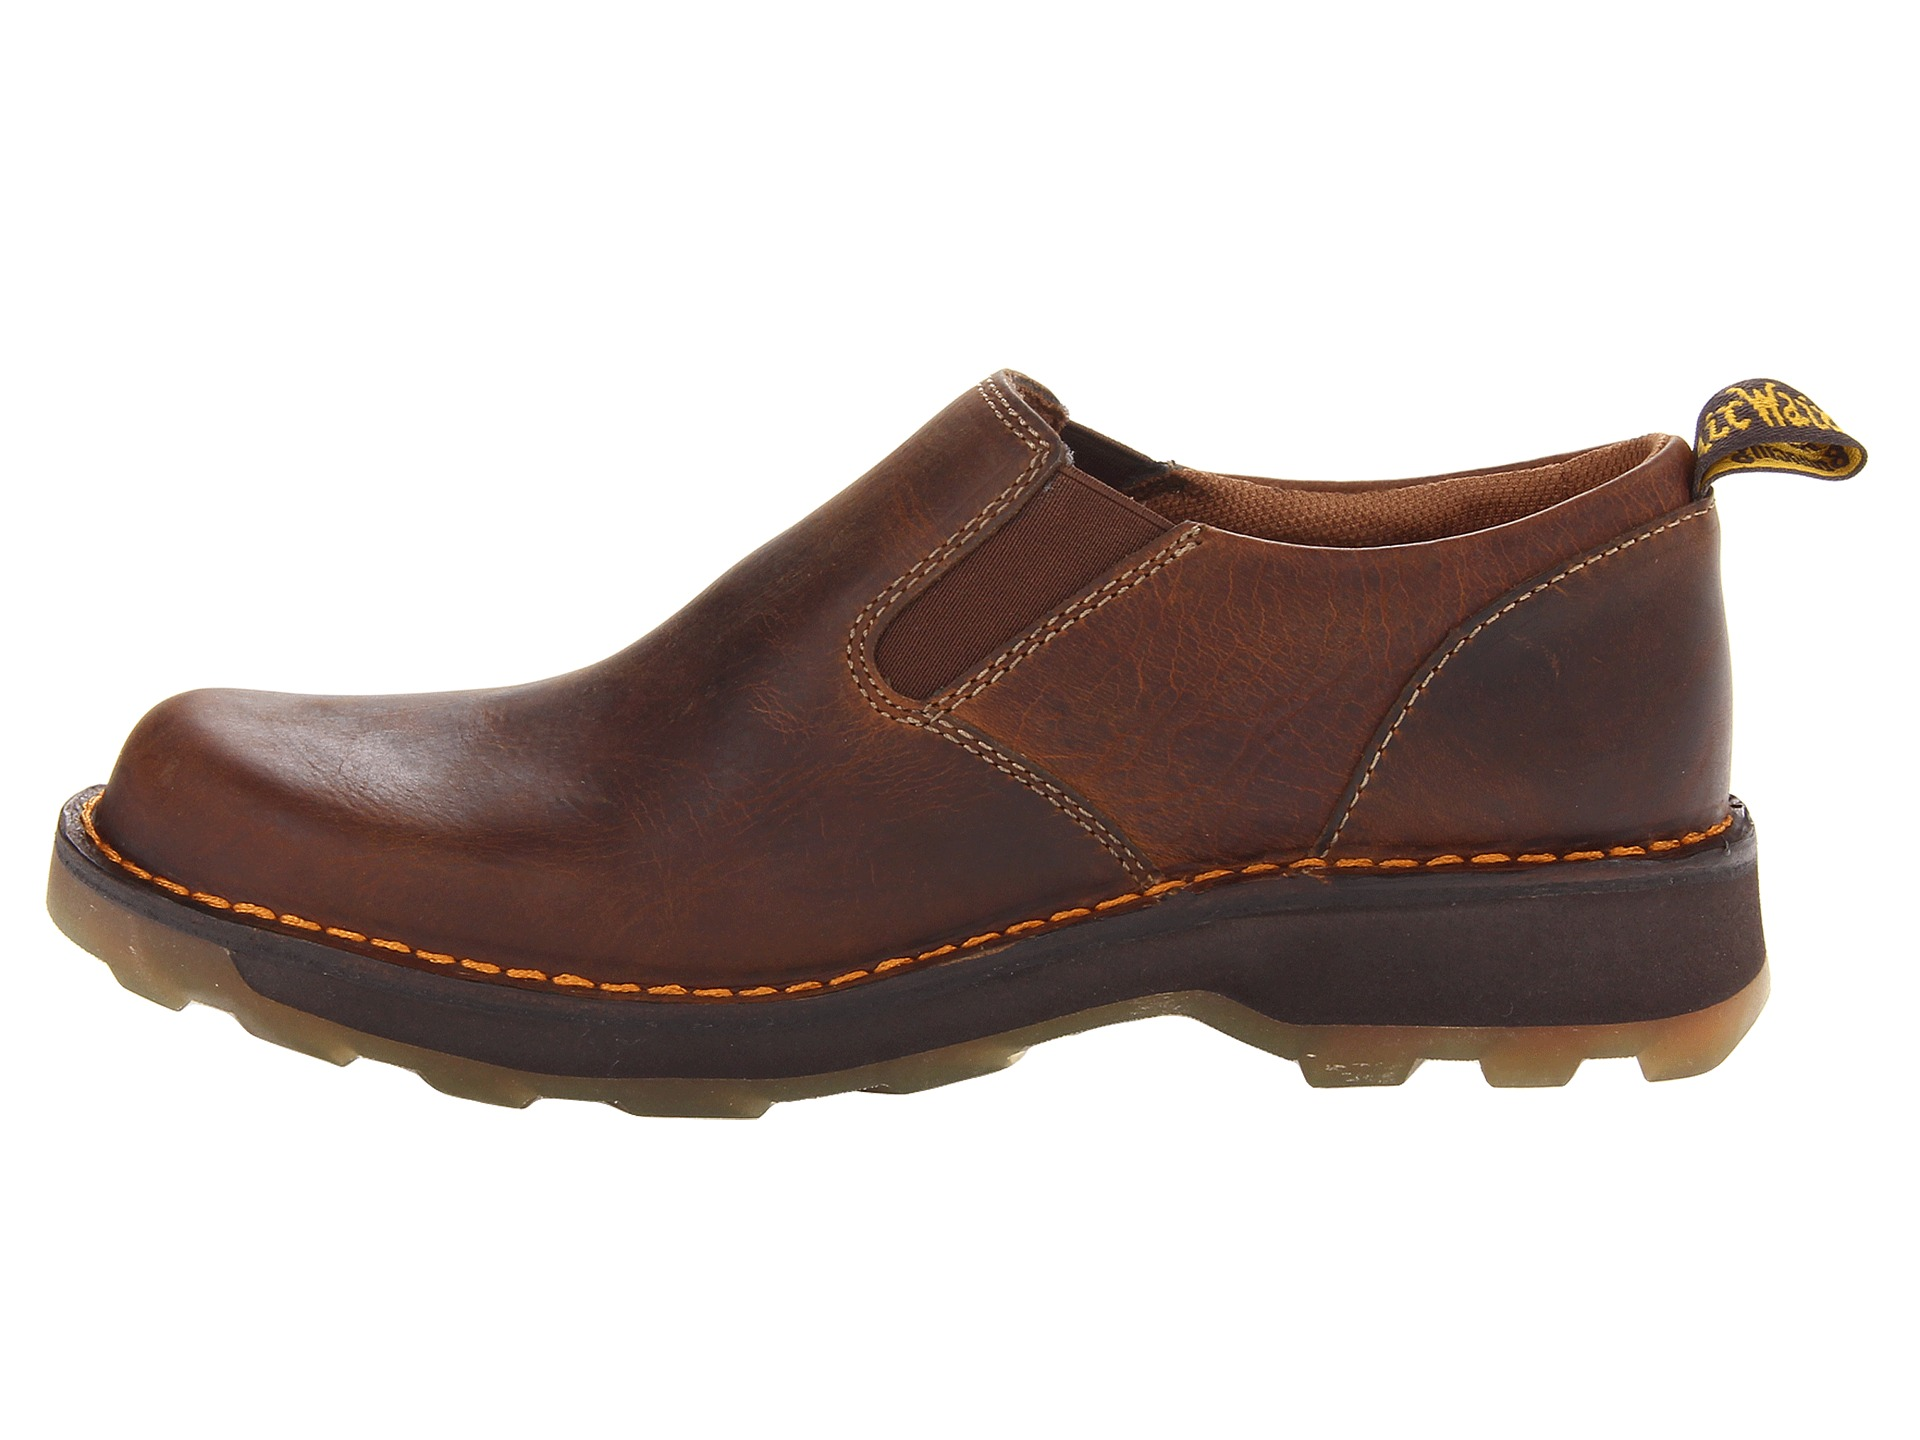 dr martens maclean slip on shoe shipped free at zappos